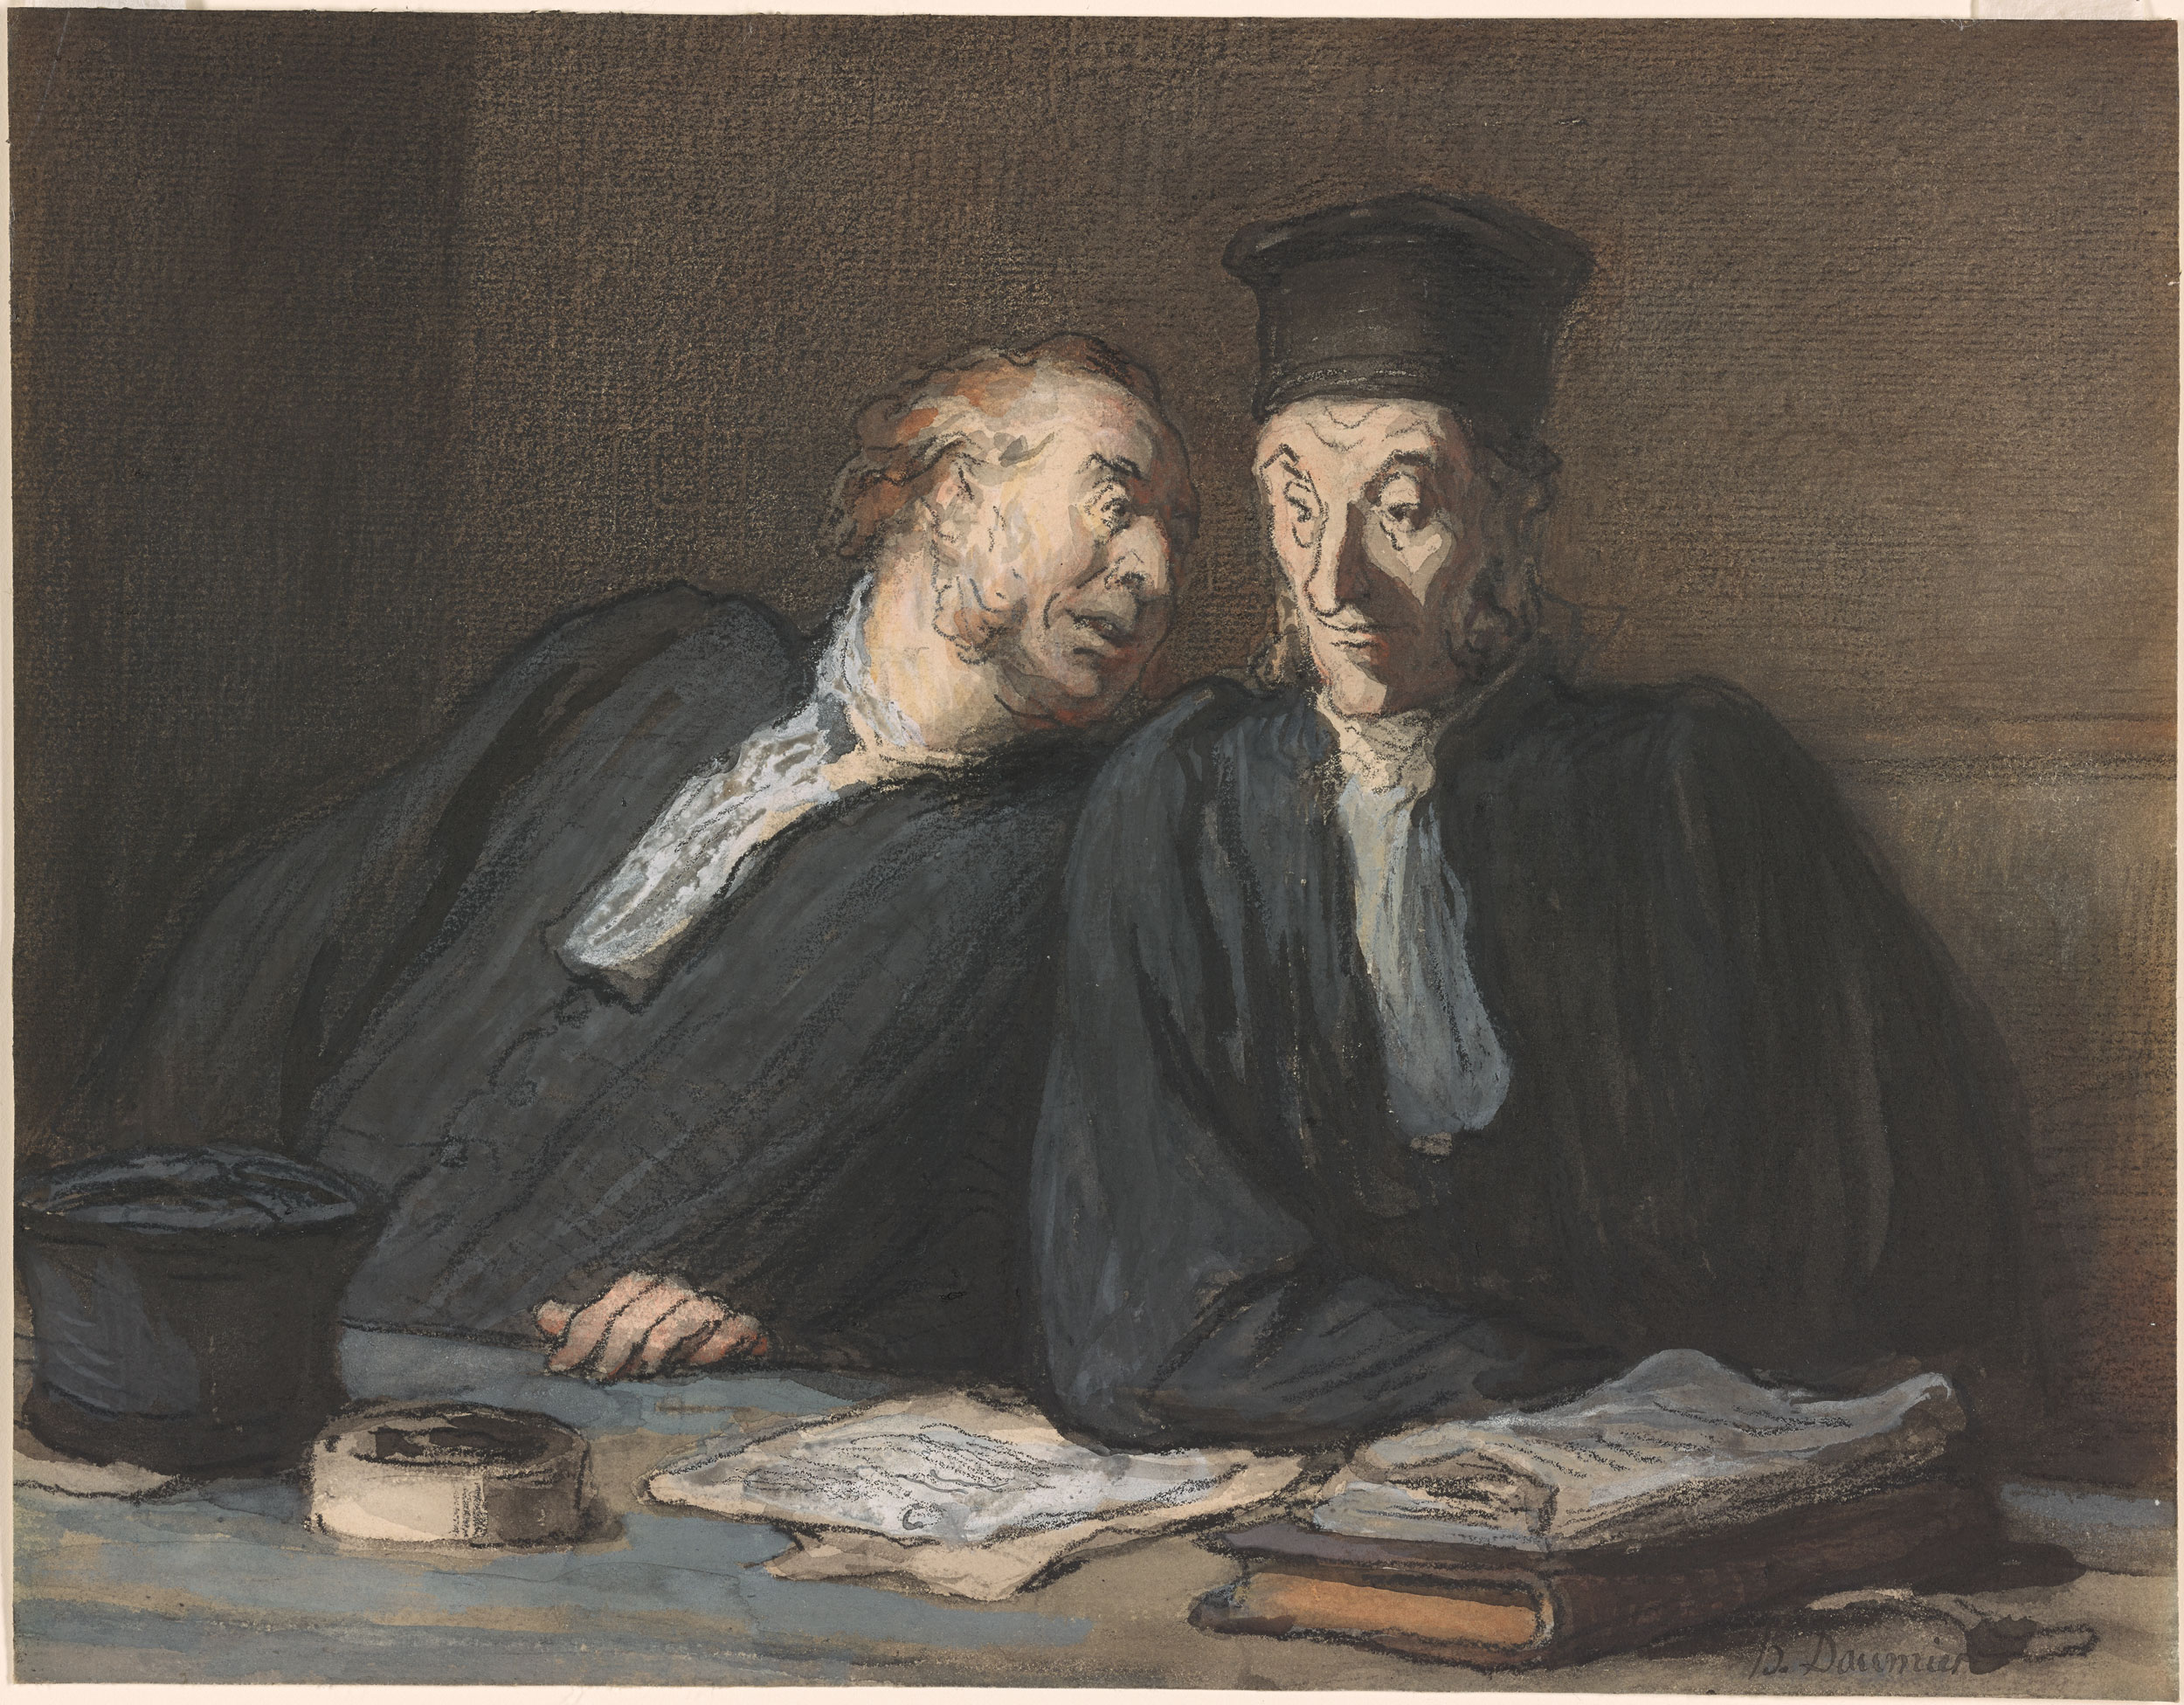 honor u00e9 daumier